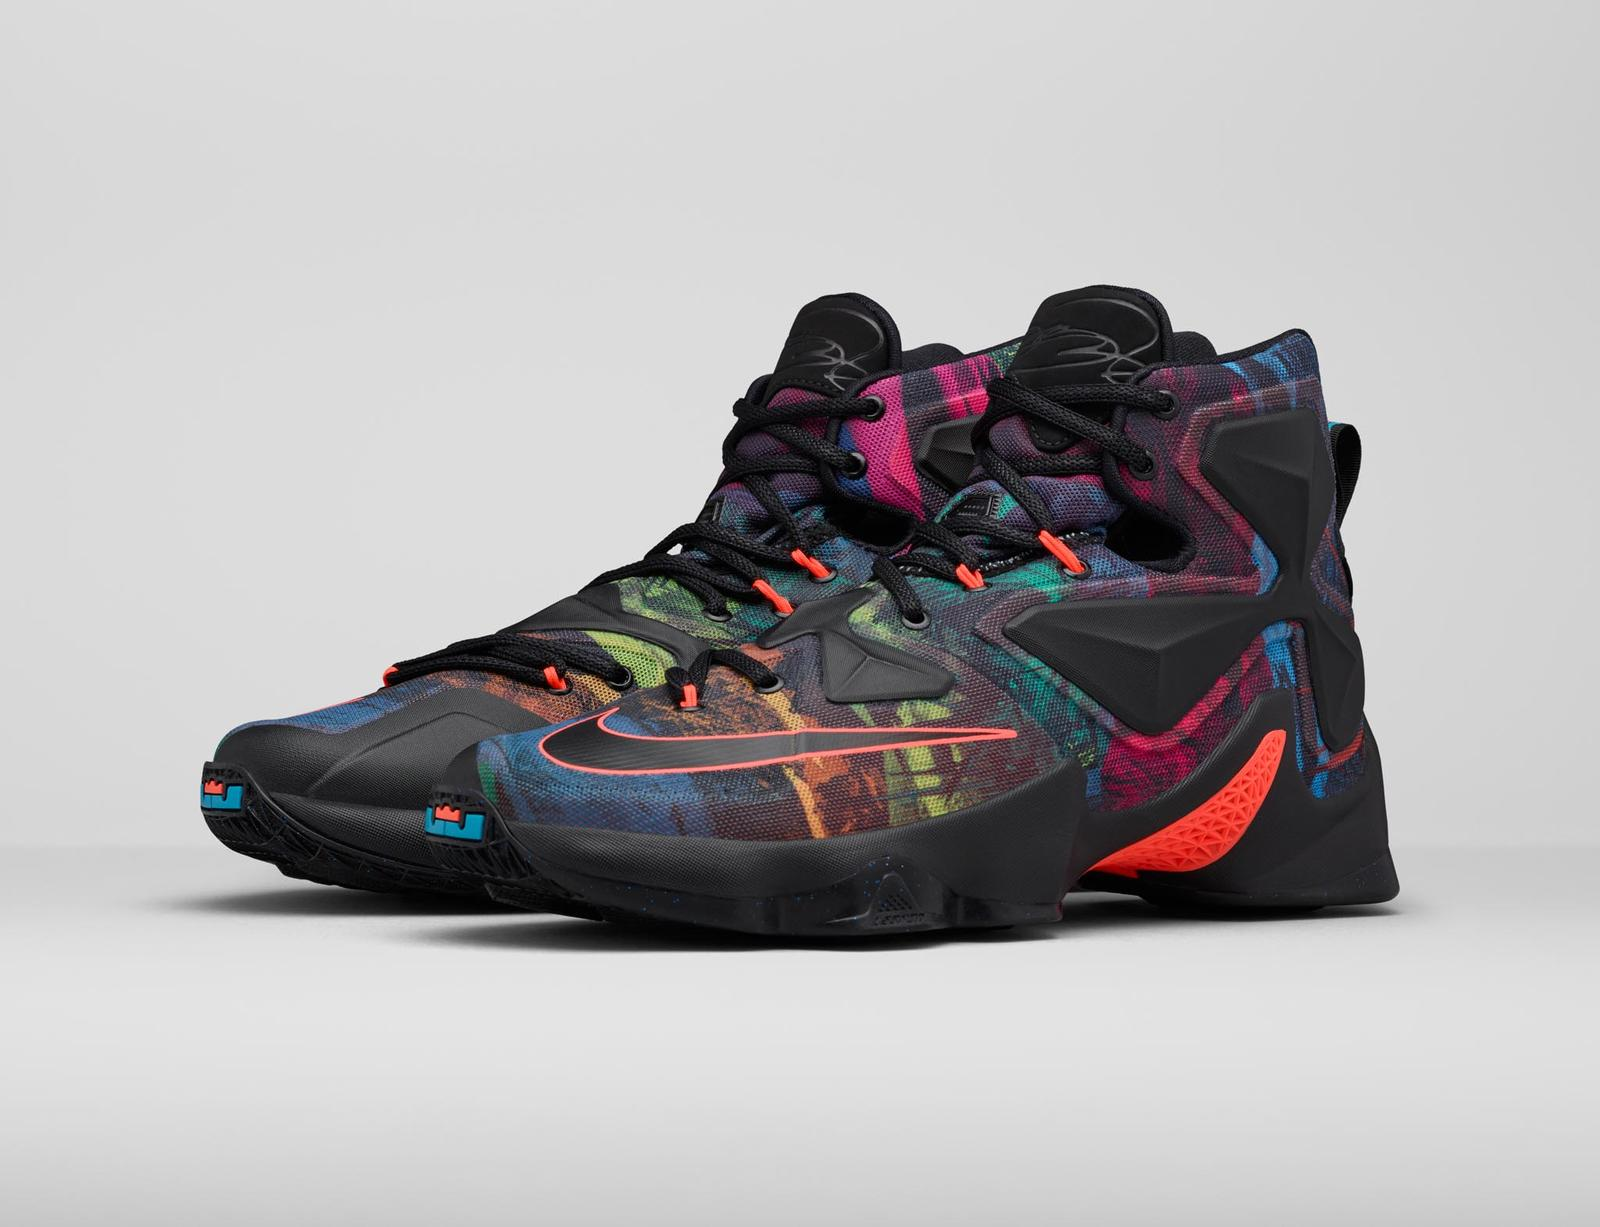 Introducing the LEBRON 13 Akronite Philosophy Shoe - Nike News 955a2b36590c